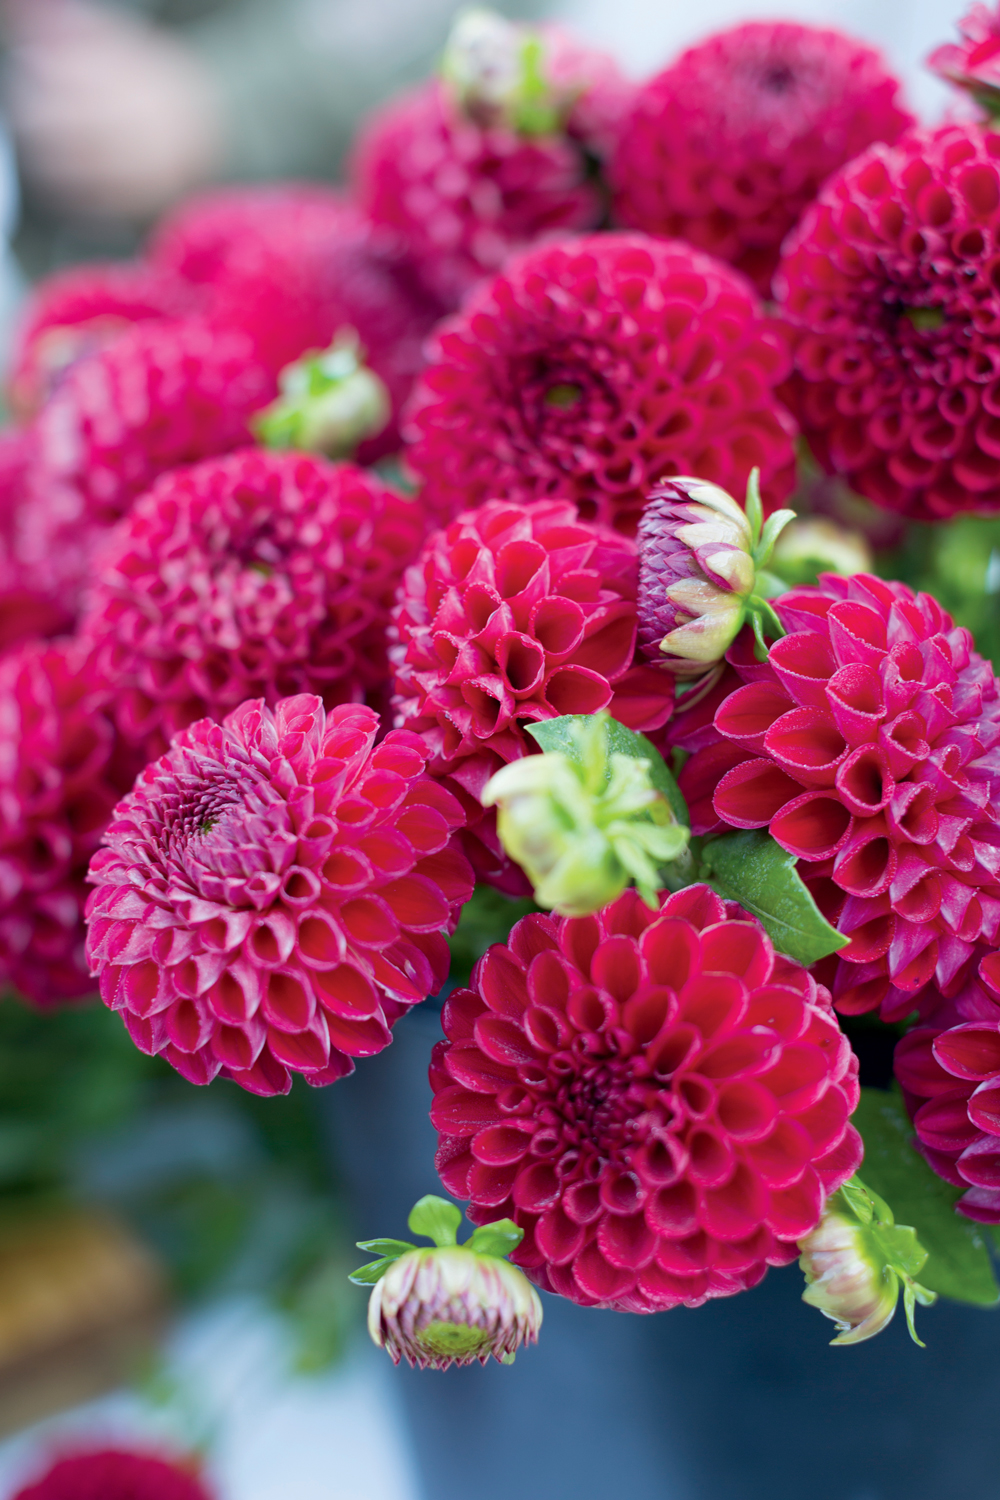 How to grow dahlias grace lams tips for growing dahlias new how to grow dahlias grace lams tips for growing dahlias new england today izmirmasajfo